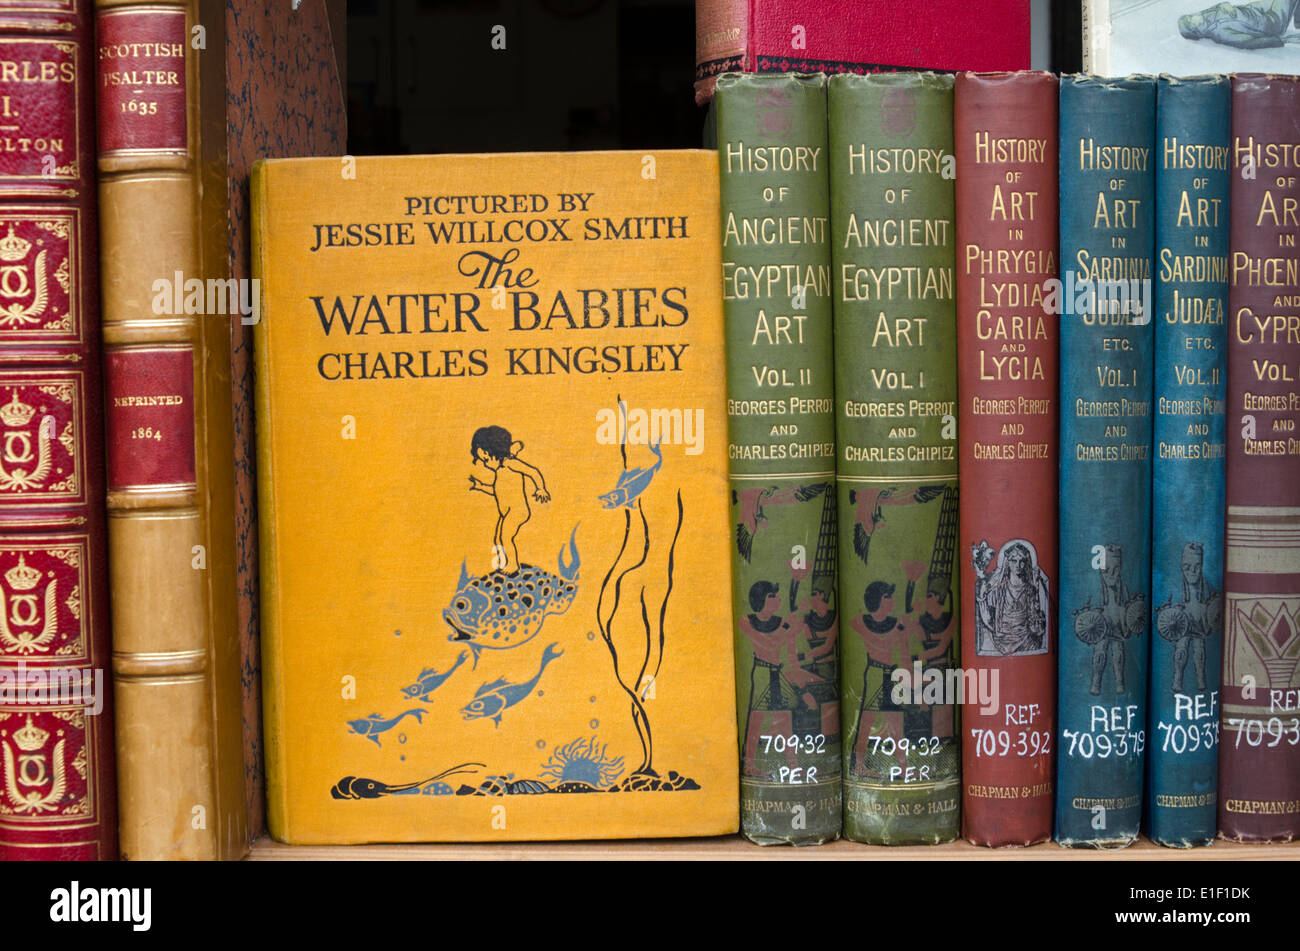 A shelf of vintage books in a secondhand bookseller's window including a copy of 'The Water Babies' by Charles Kingsley. - Stock Image